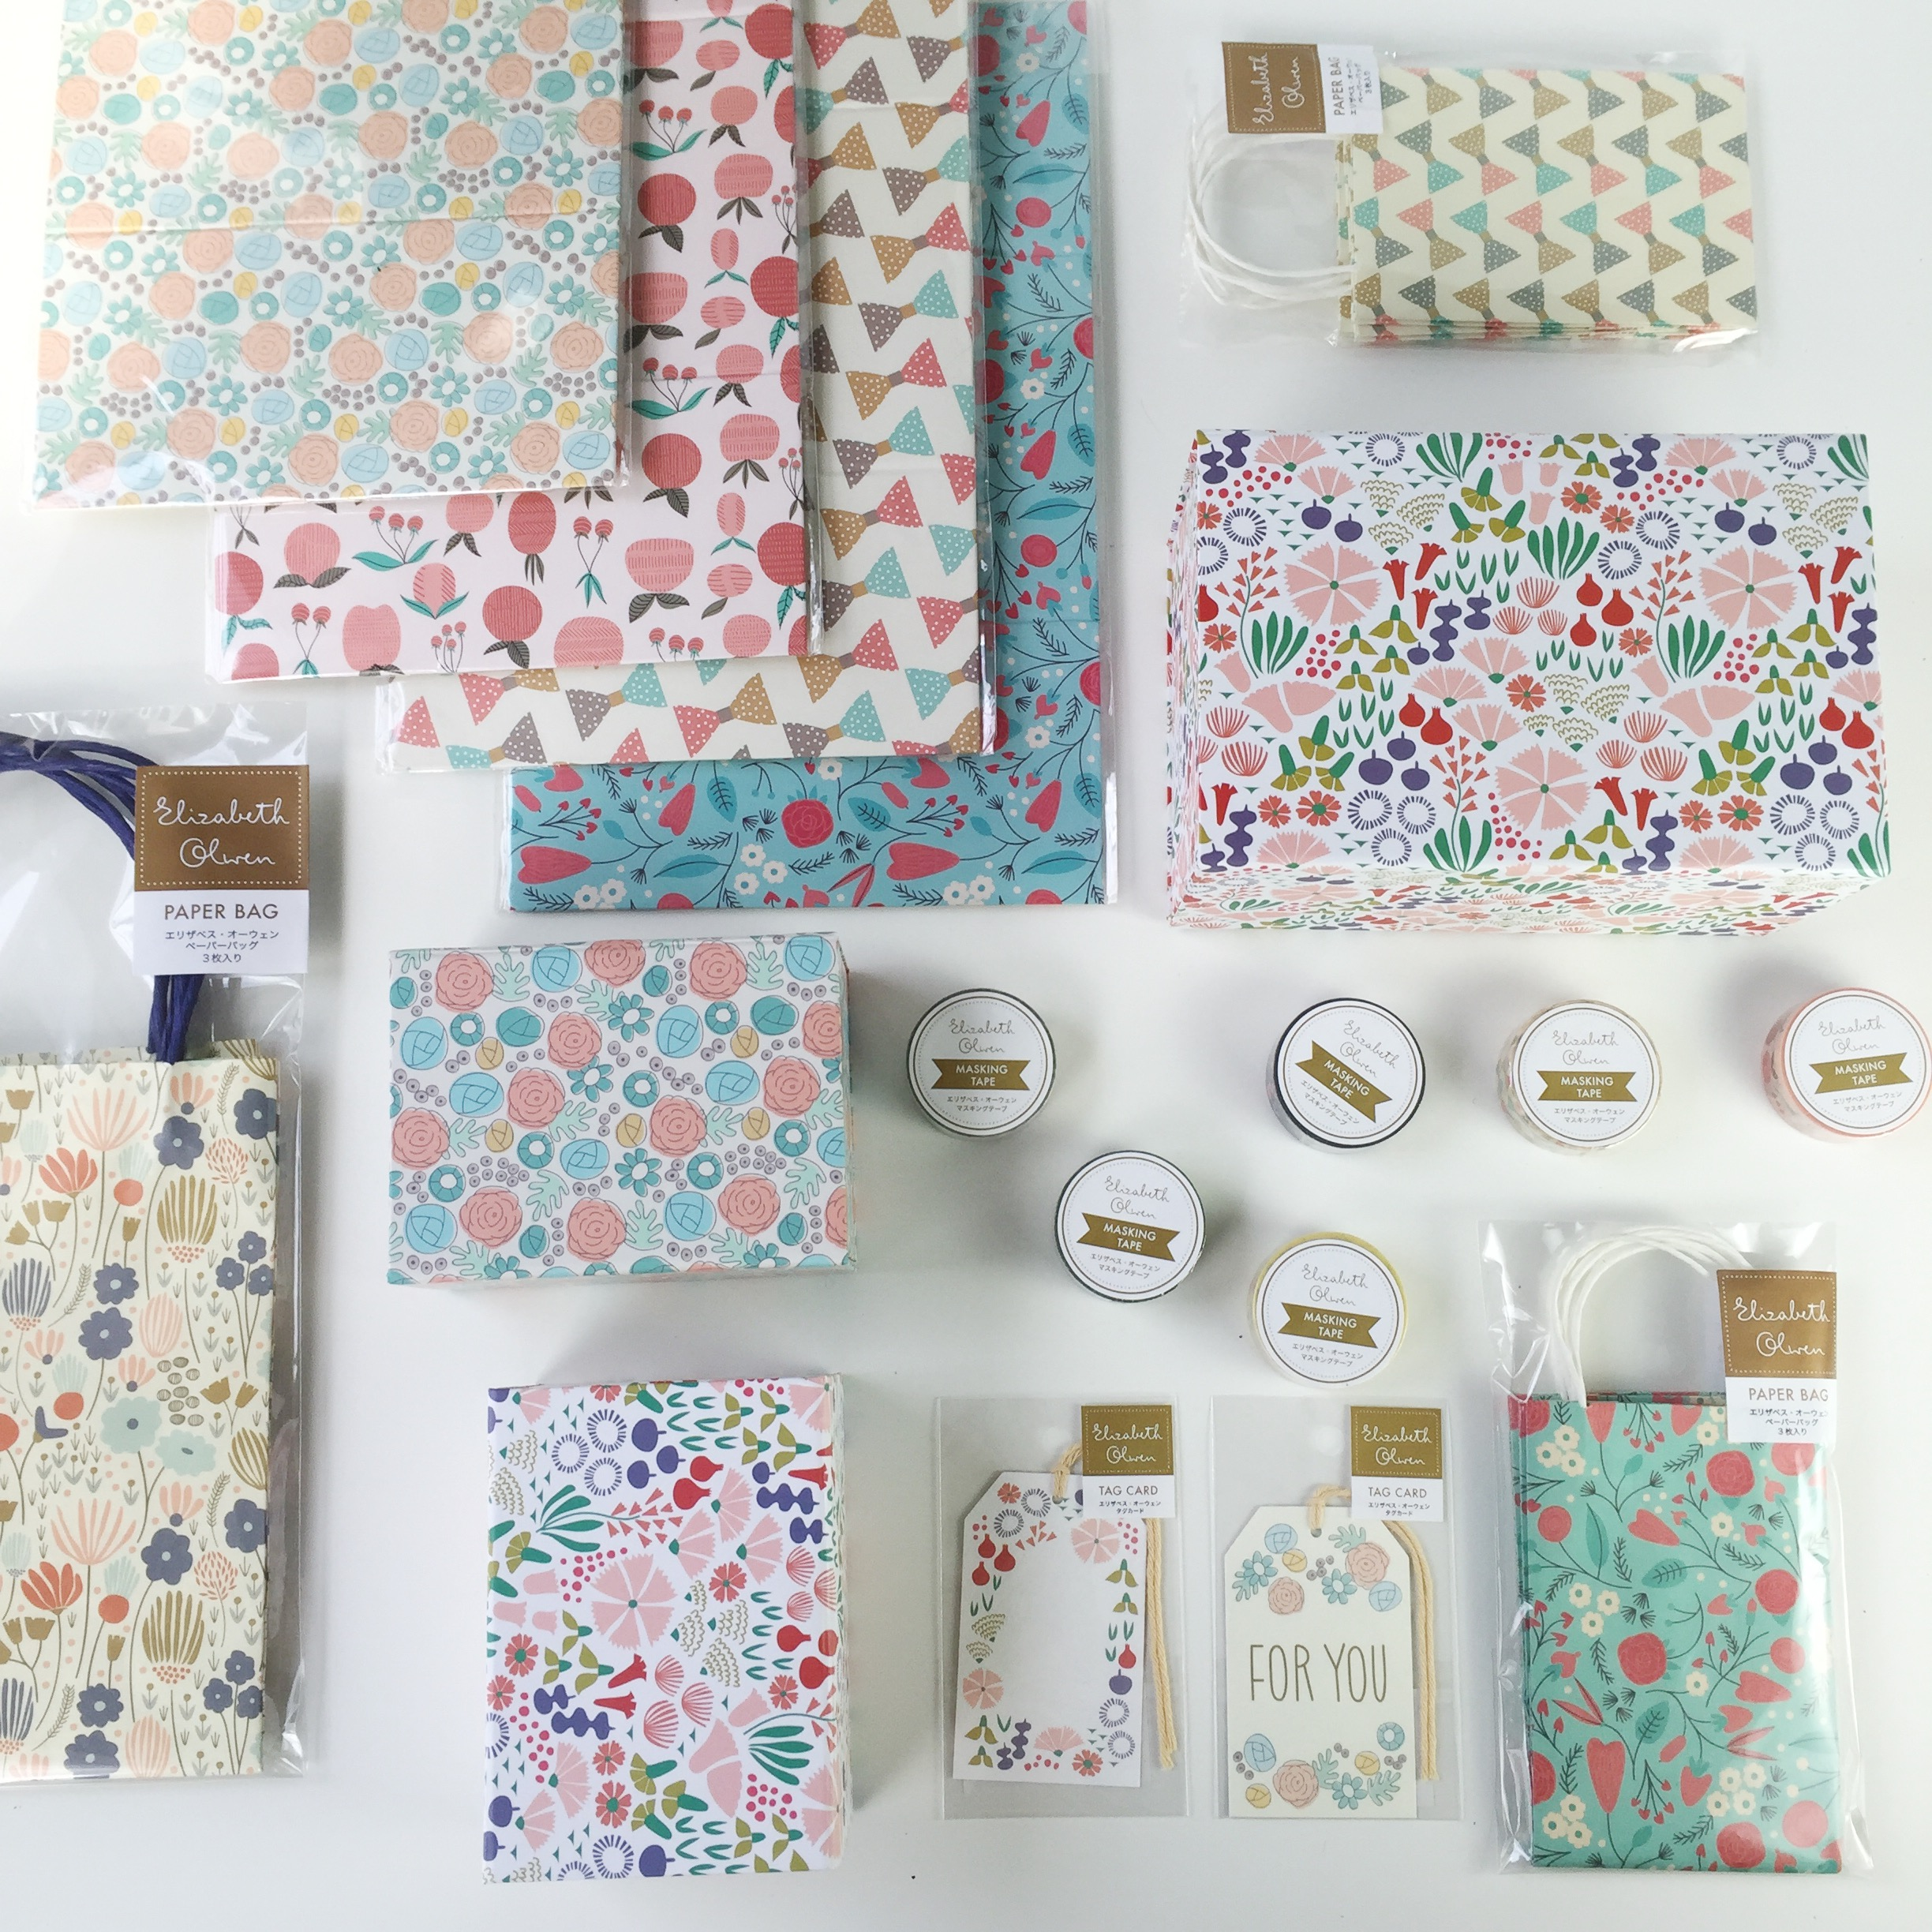 Tokyu Hands Boxes, Bags, Labels & Washi